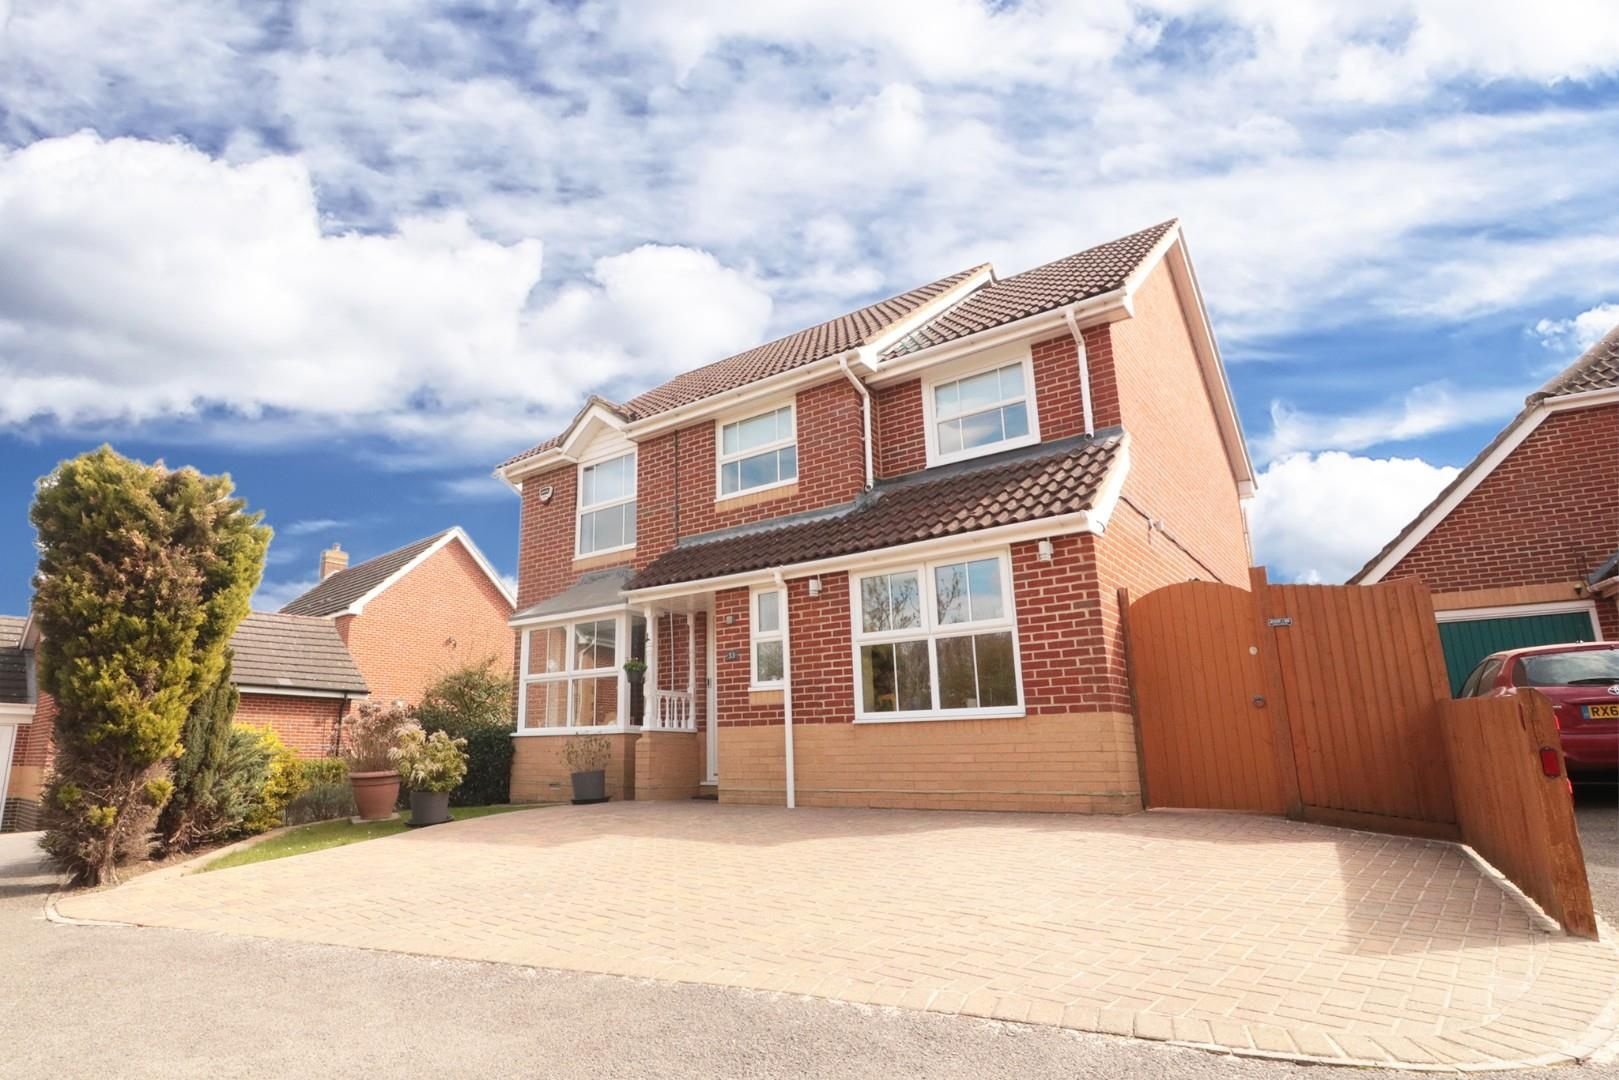 4 bed detached for sale in Binfield, RG42